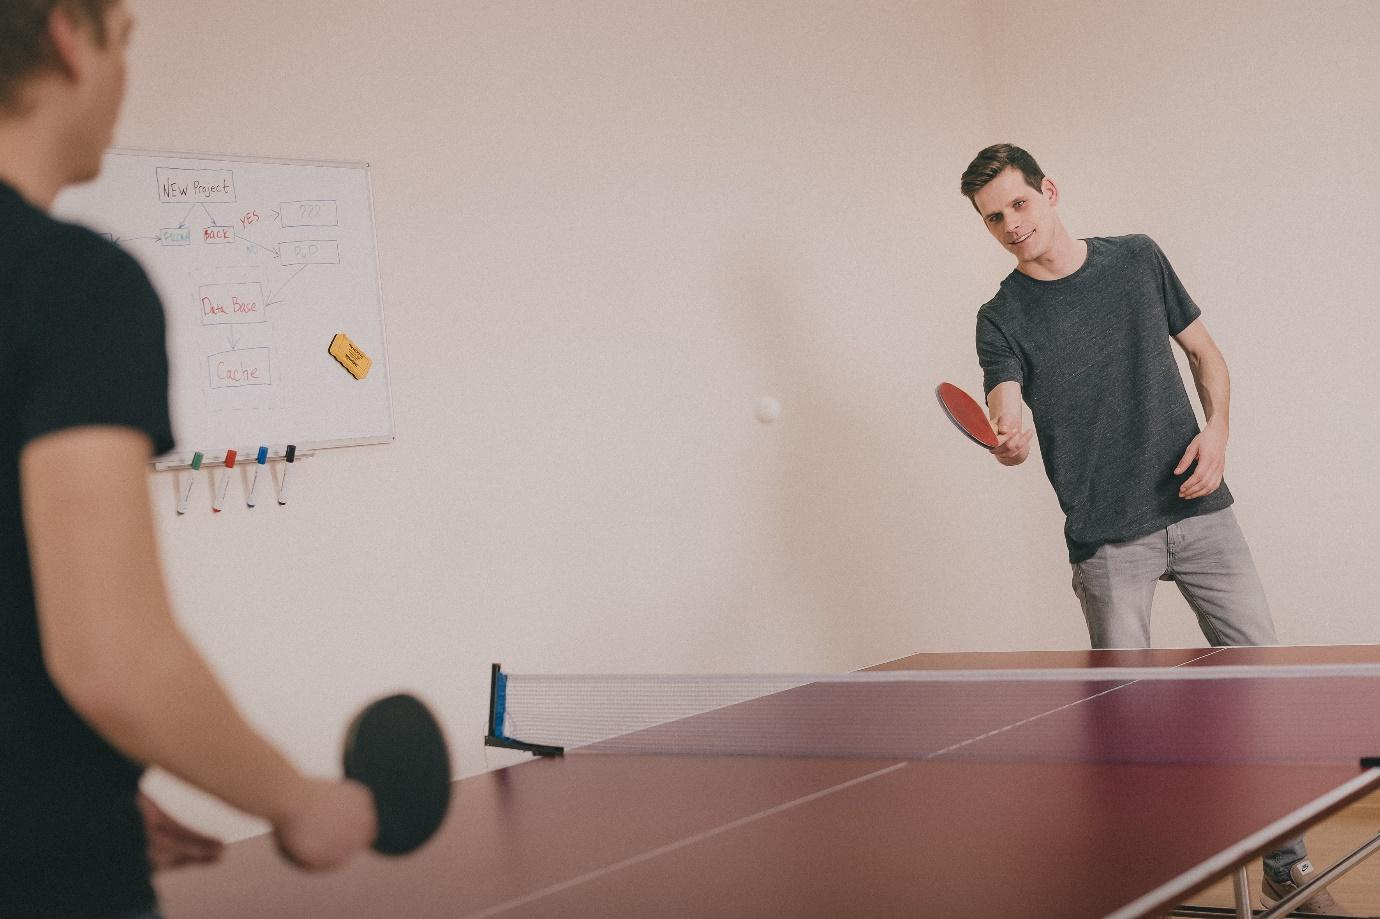 Two people playing ping-pong